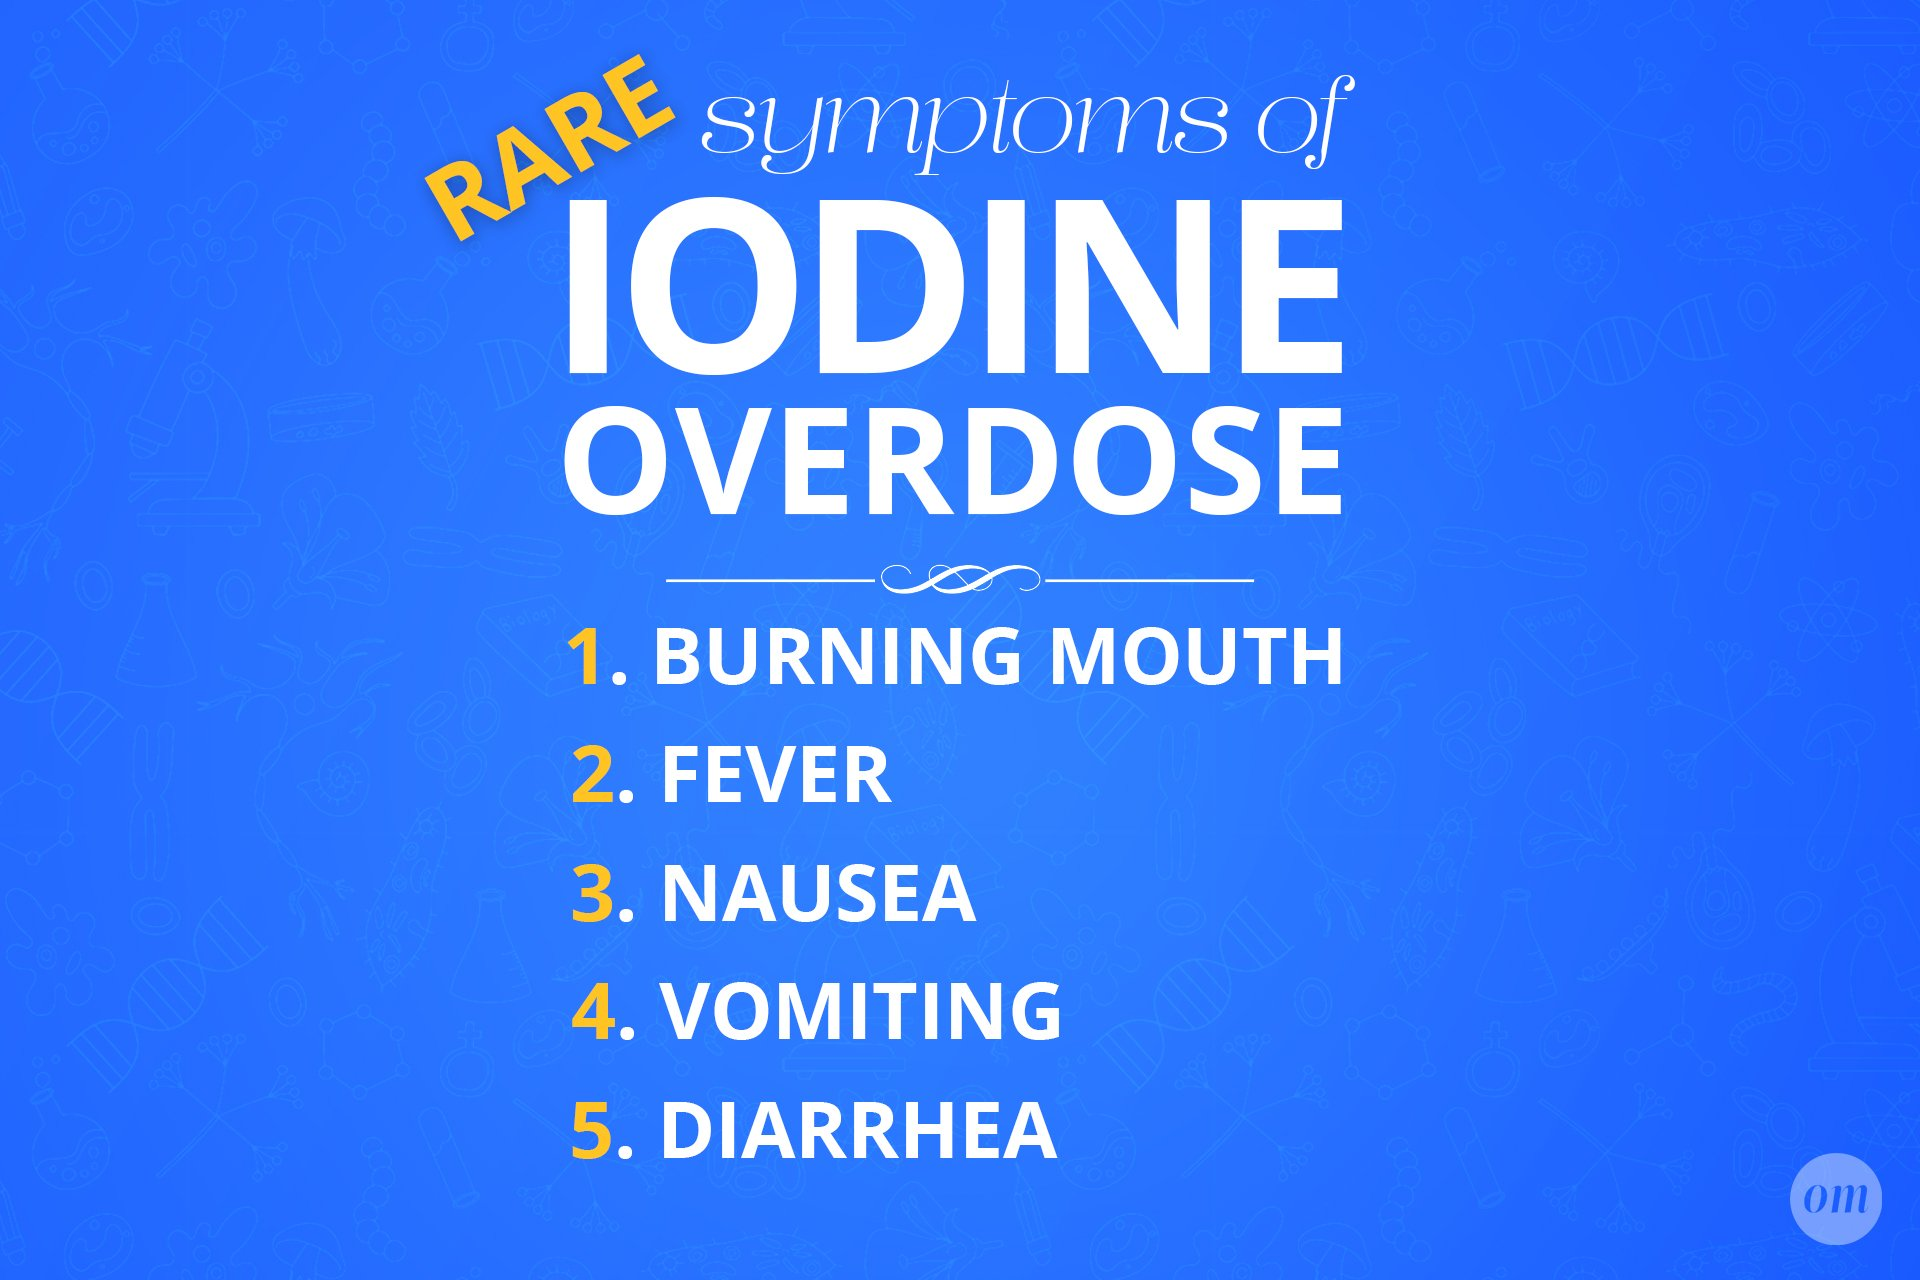 symptoms of iodine overdose infographic